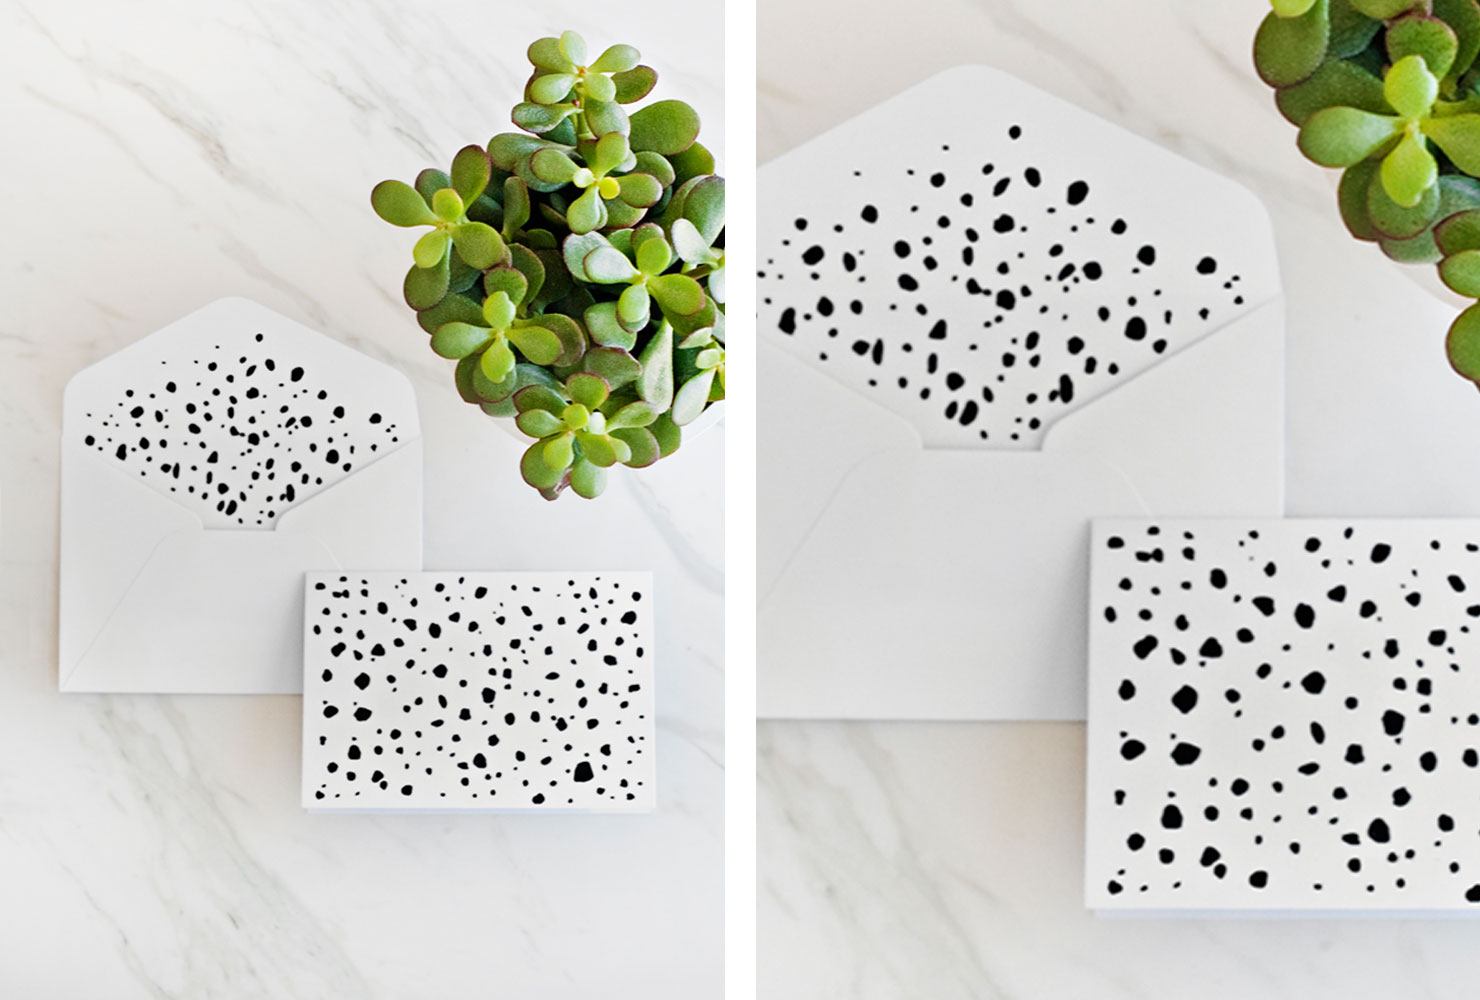 White stationary with black spots and green plant